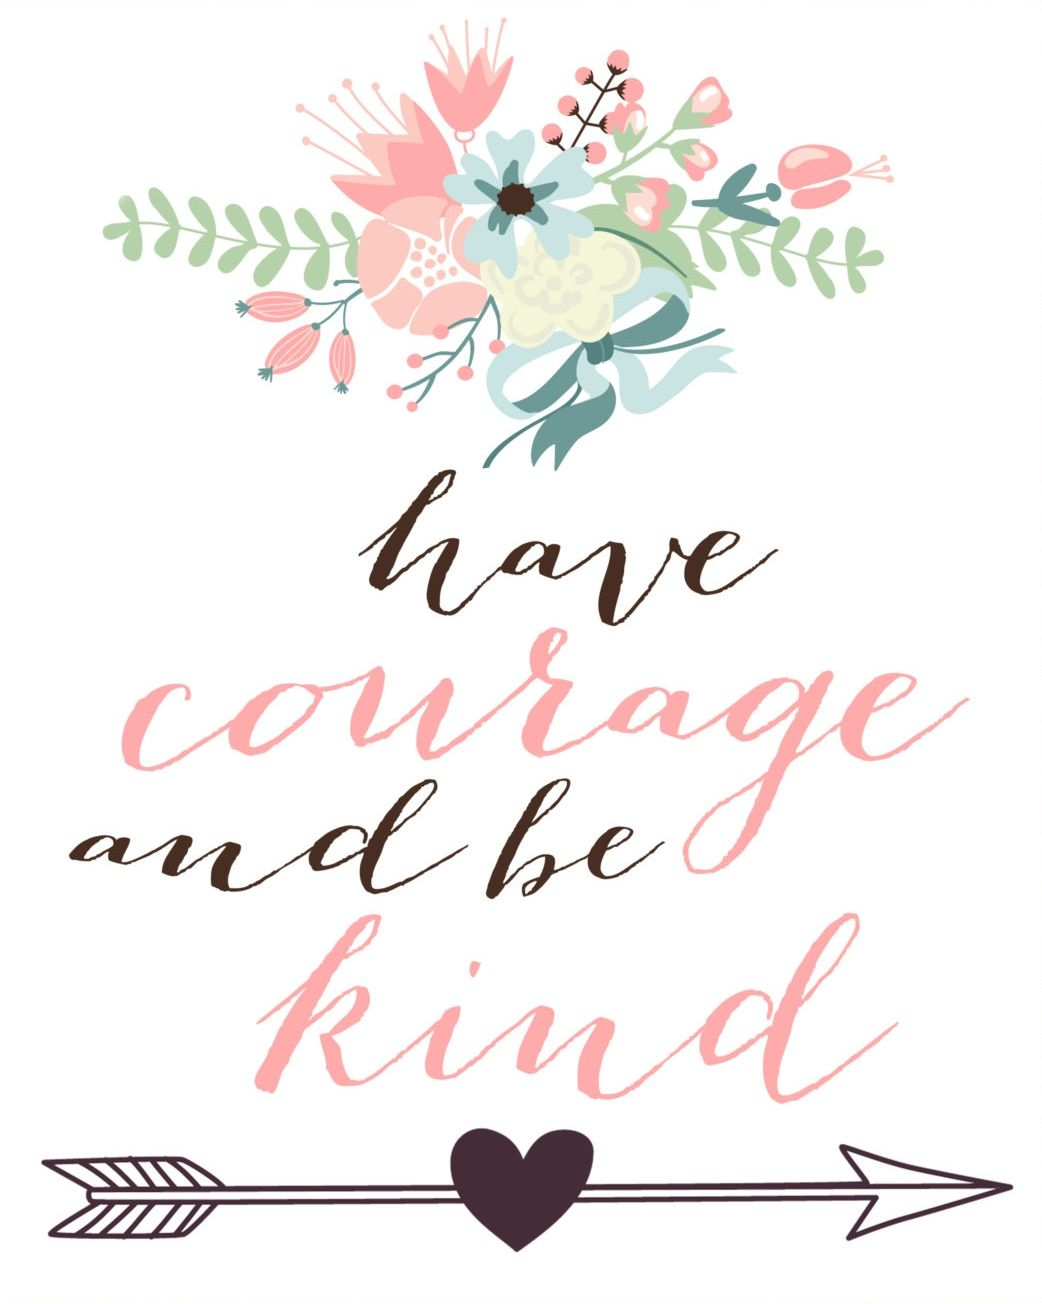 picture relating to Have Courage and Be Kind Printable identify Comprise braveness and be style. Cinderella estimate, absolutely free printable